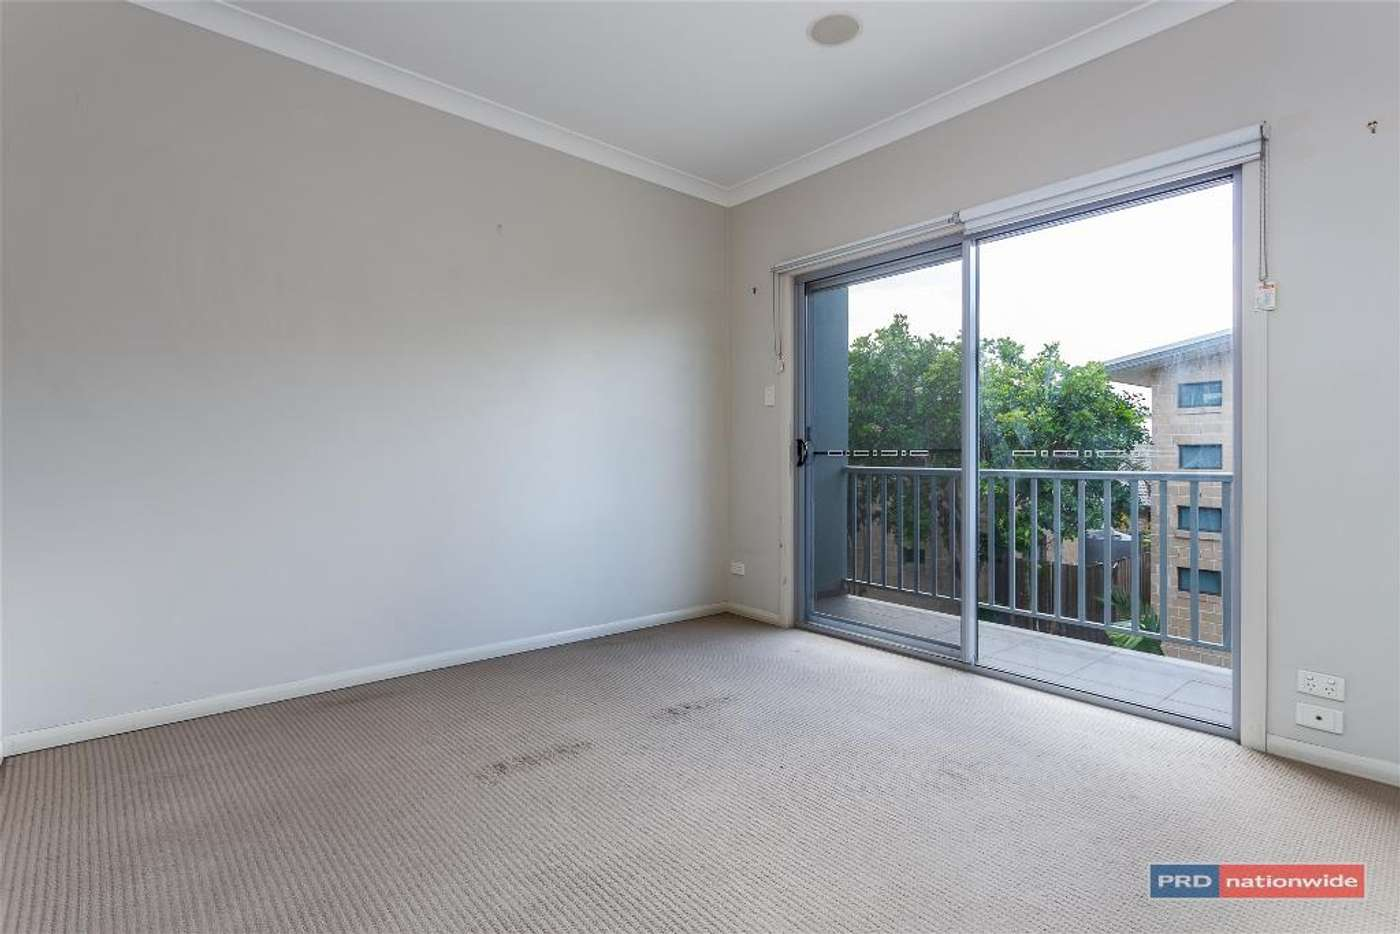 Seventh view of Homely house listing, 33/7 Lucy Street, Marsden QLD 4132